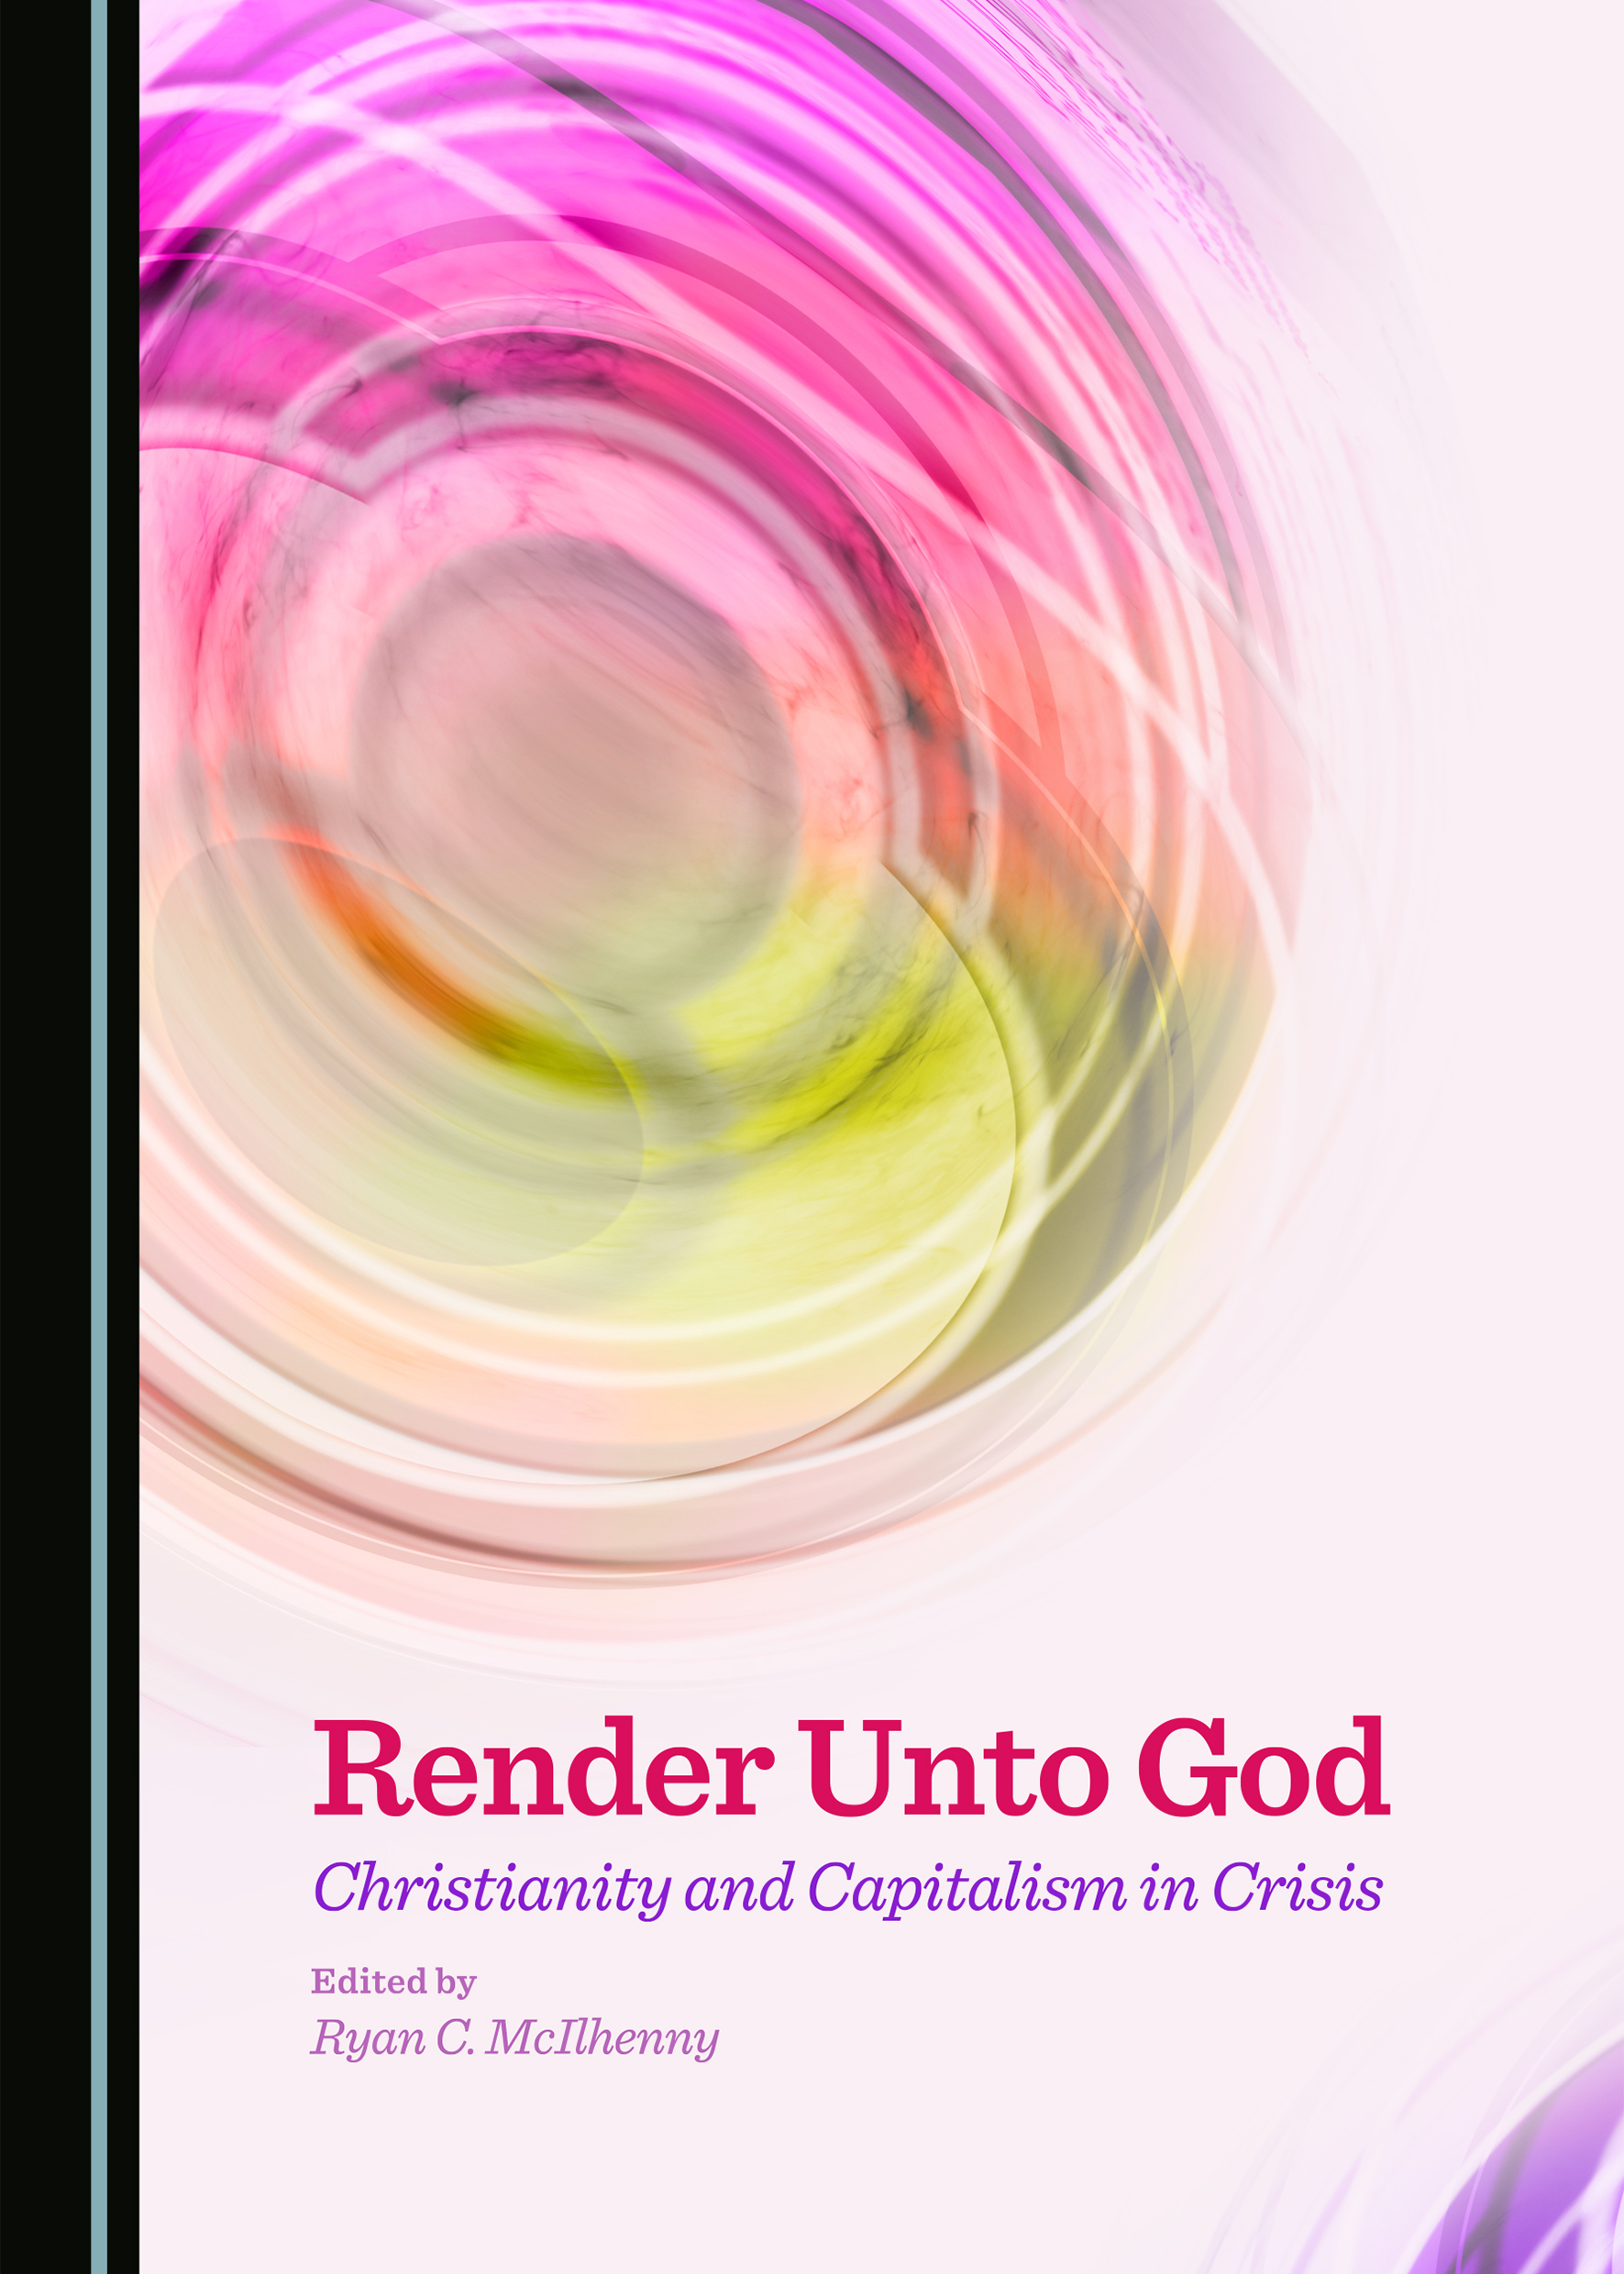 Render Unto God: Christianity and Capitalism in Crisis